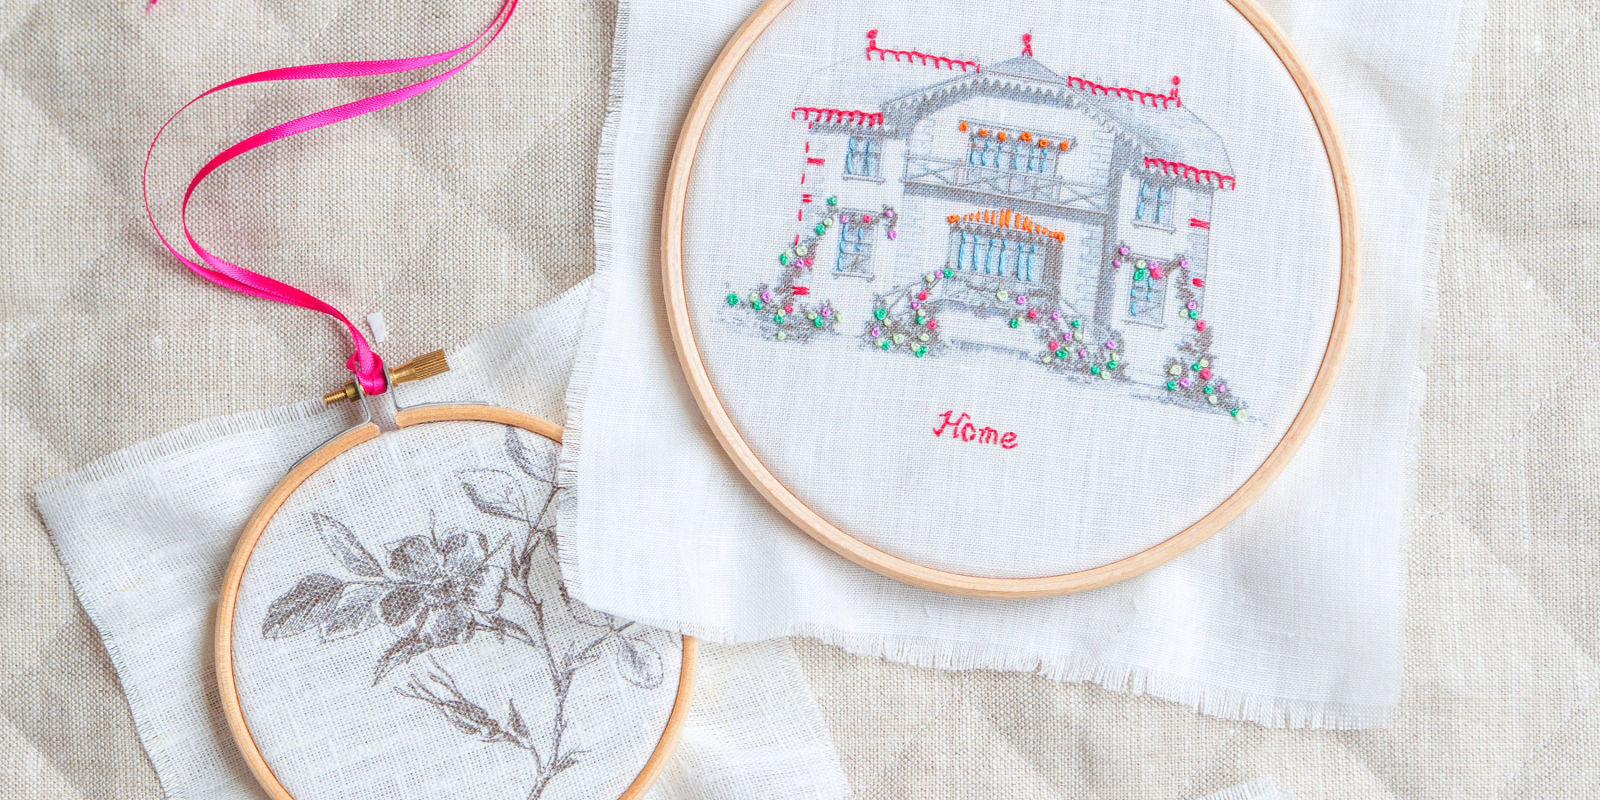 How to make a print and stitch embroidery hoop gift